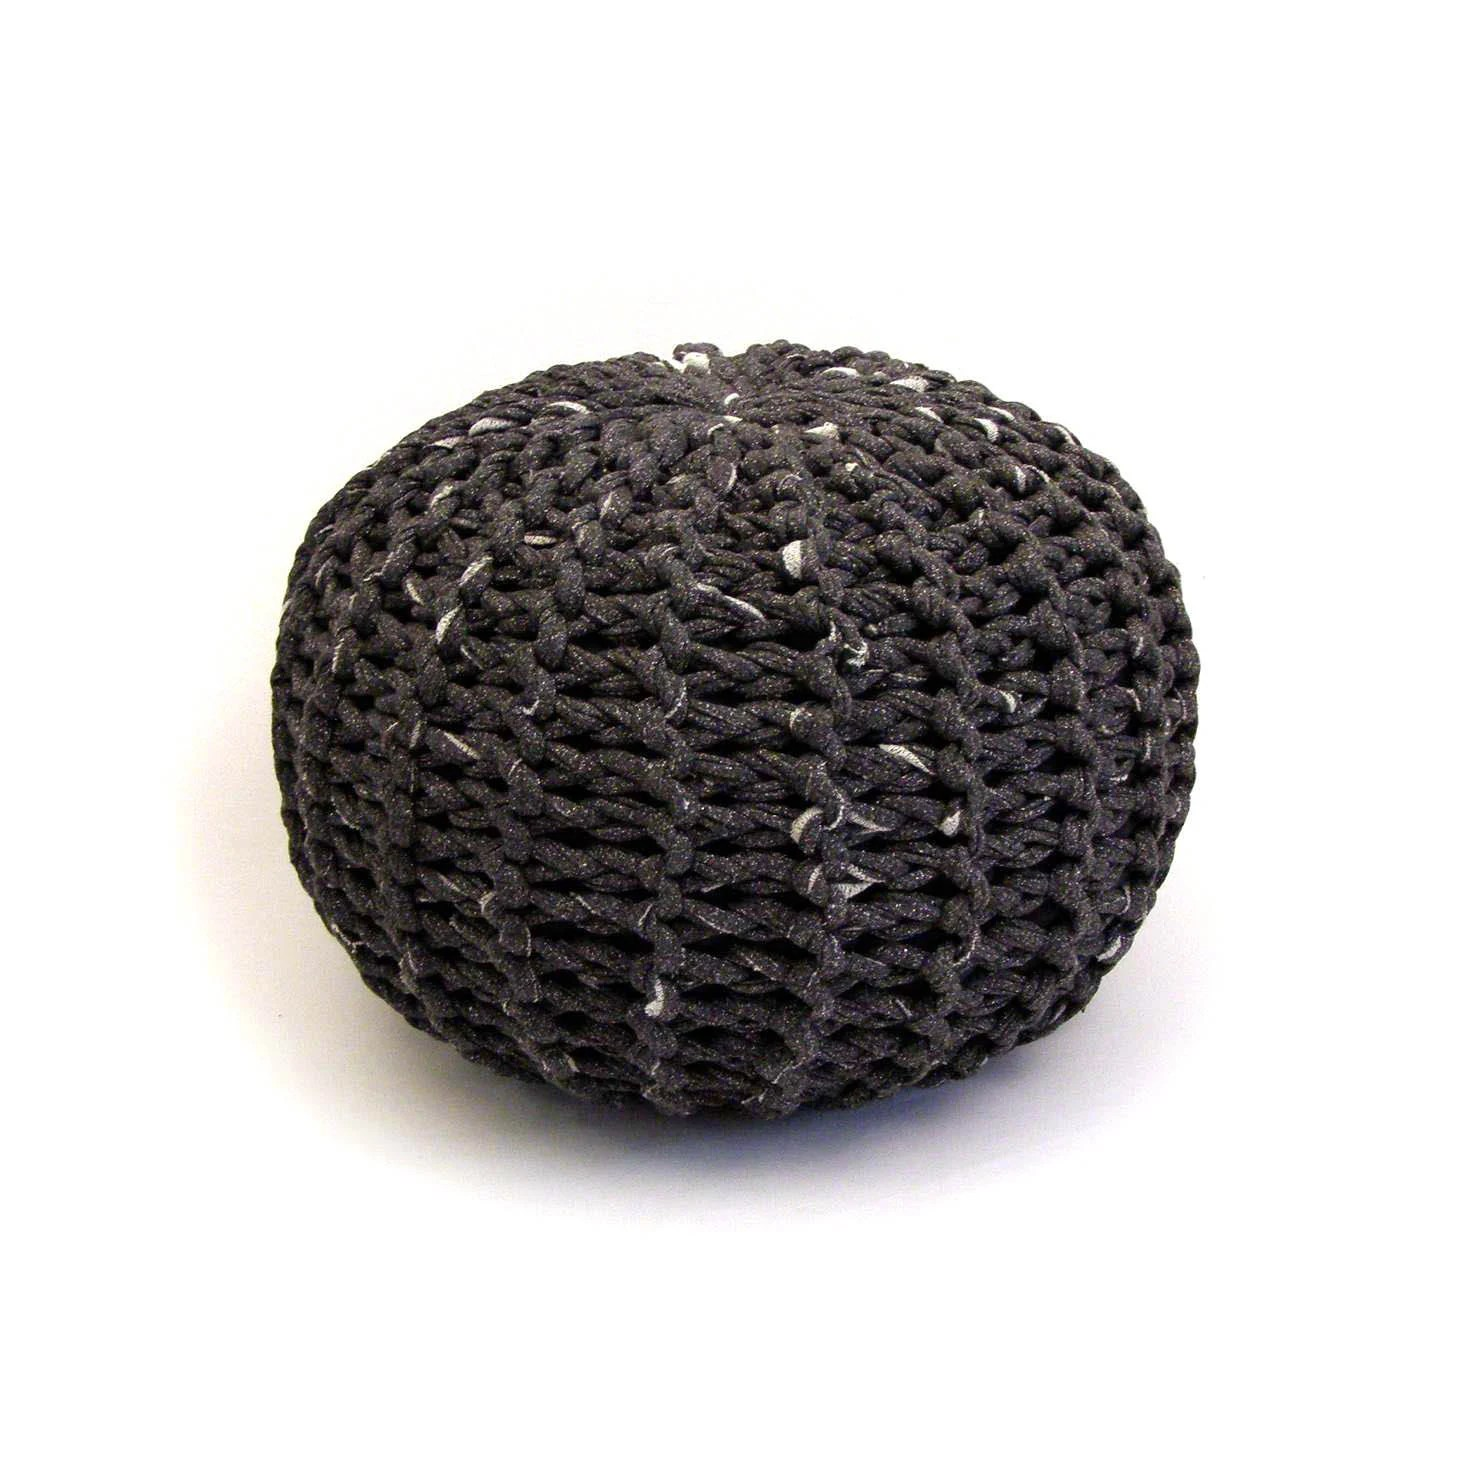 Small soft charcoal handmade knitted pouf - tayostudio